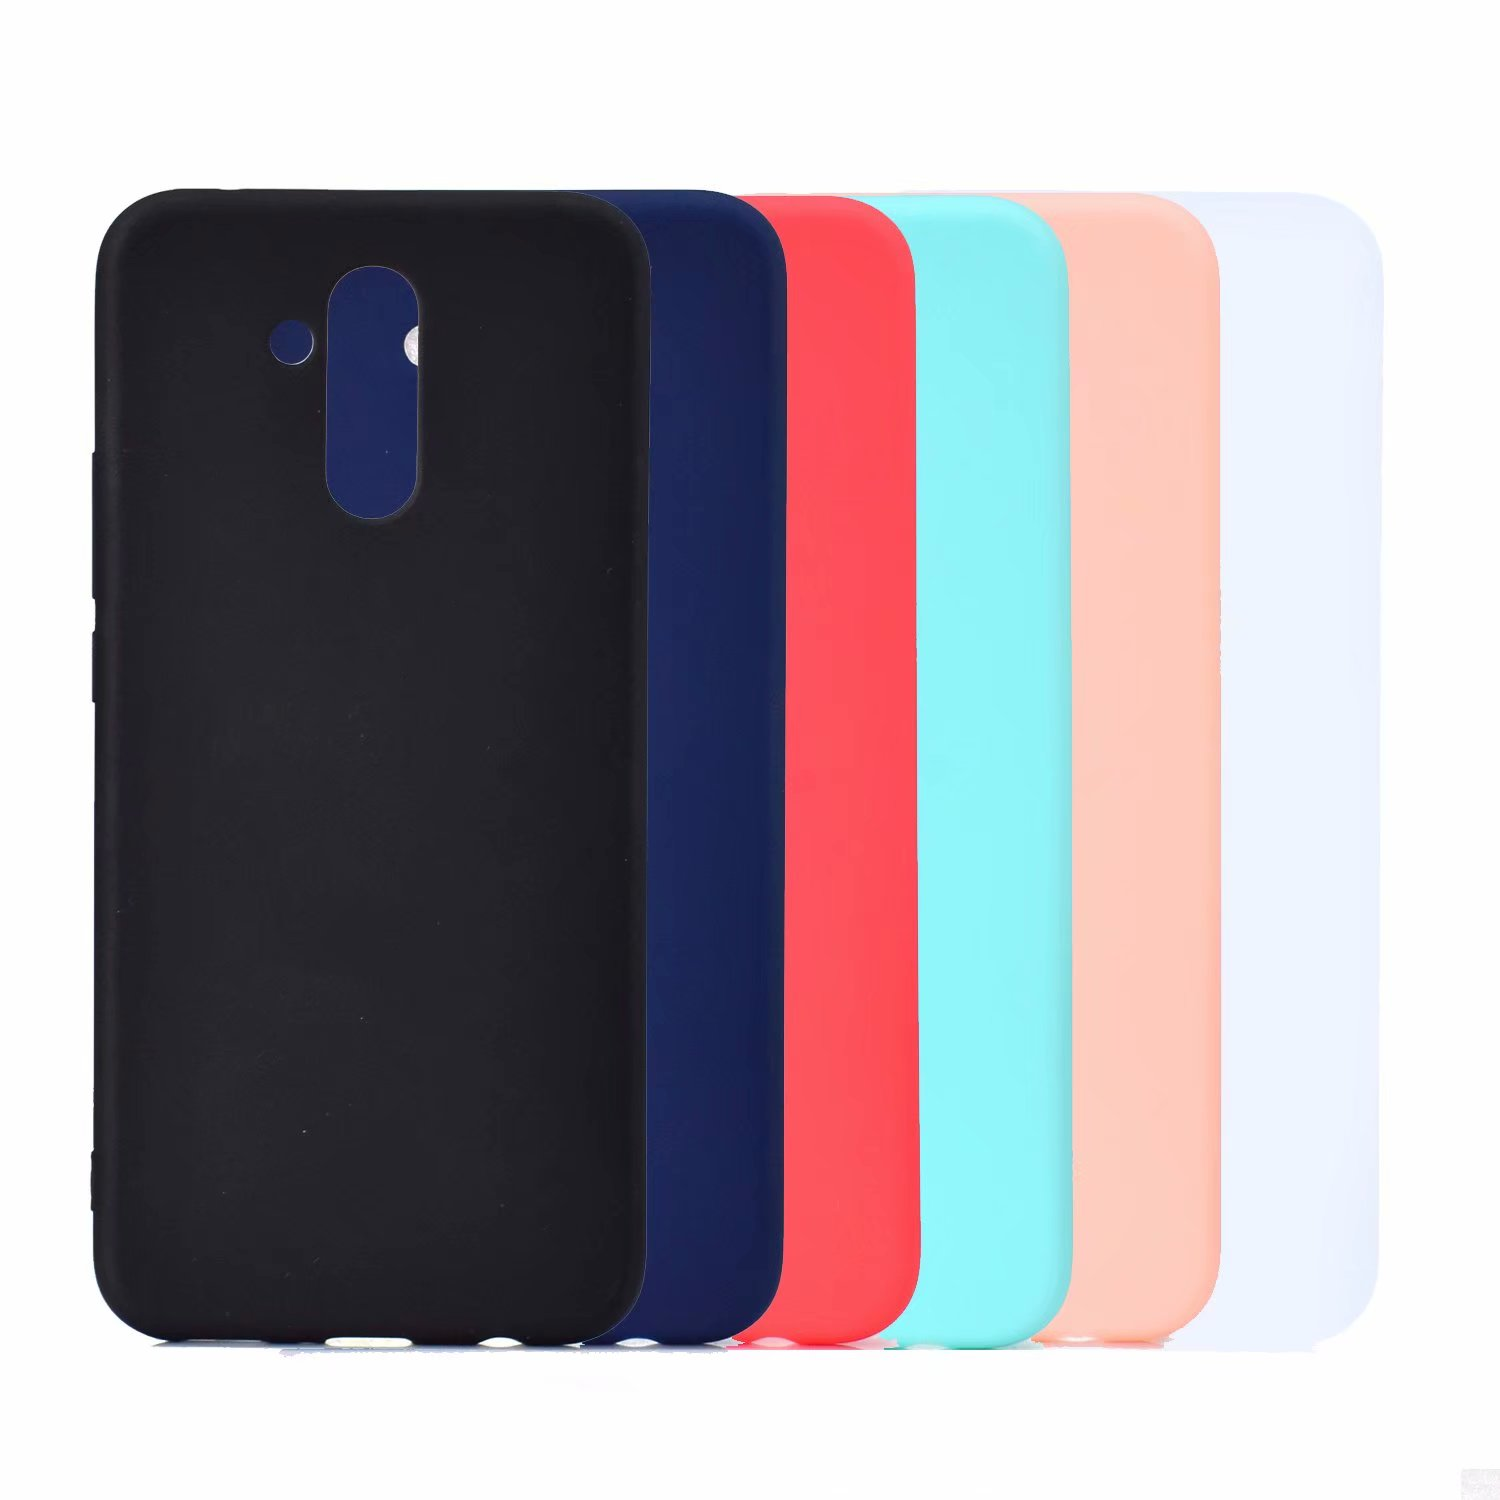 Mate 10 lite Cases For Huawei Mate 10 lite case luxury soft silicon tpu Phone Case Huawei Mate 20 Lite SNE-AL00 8X 8X Max